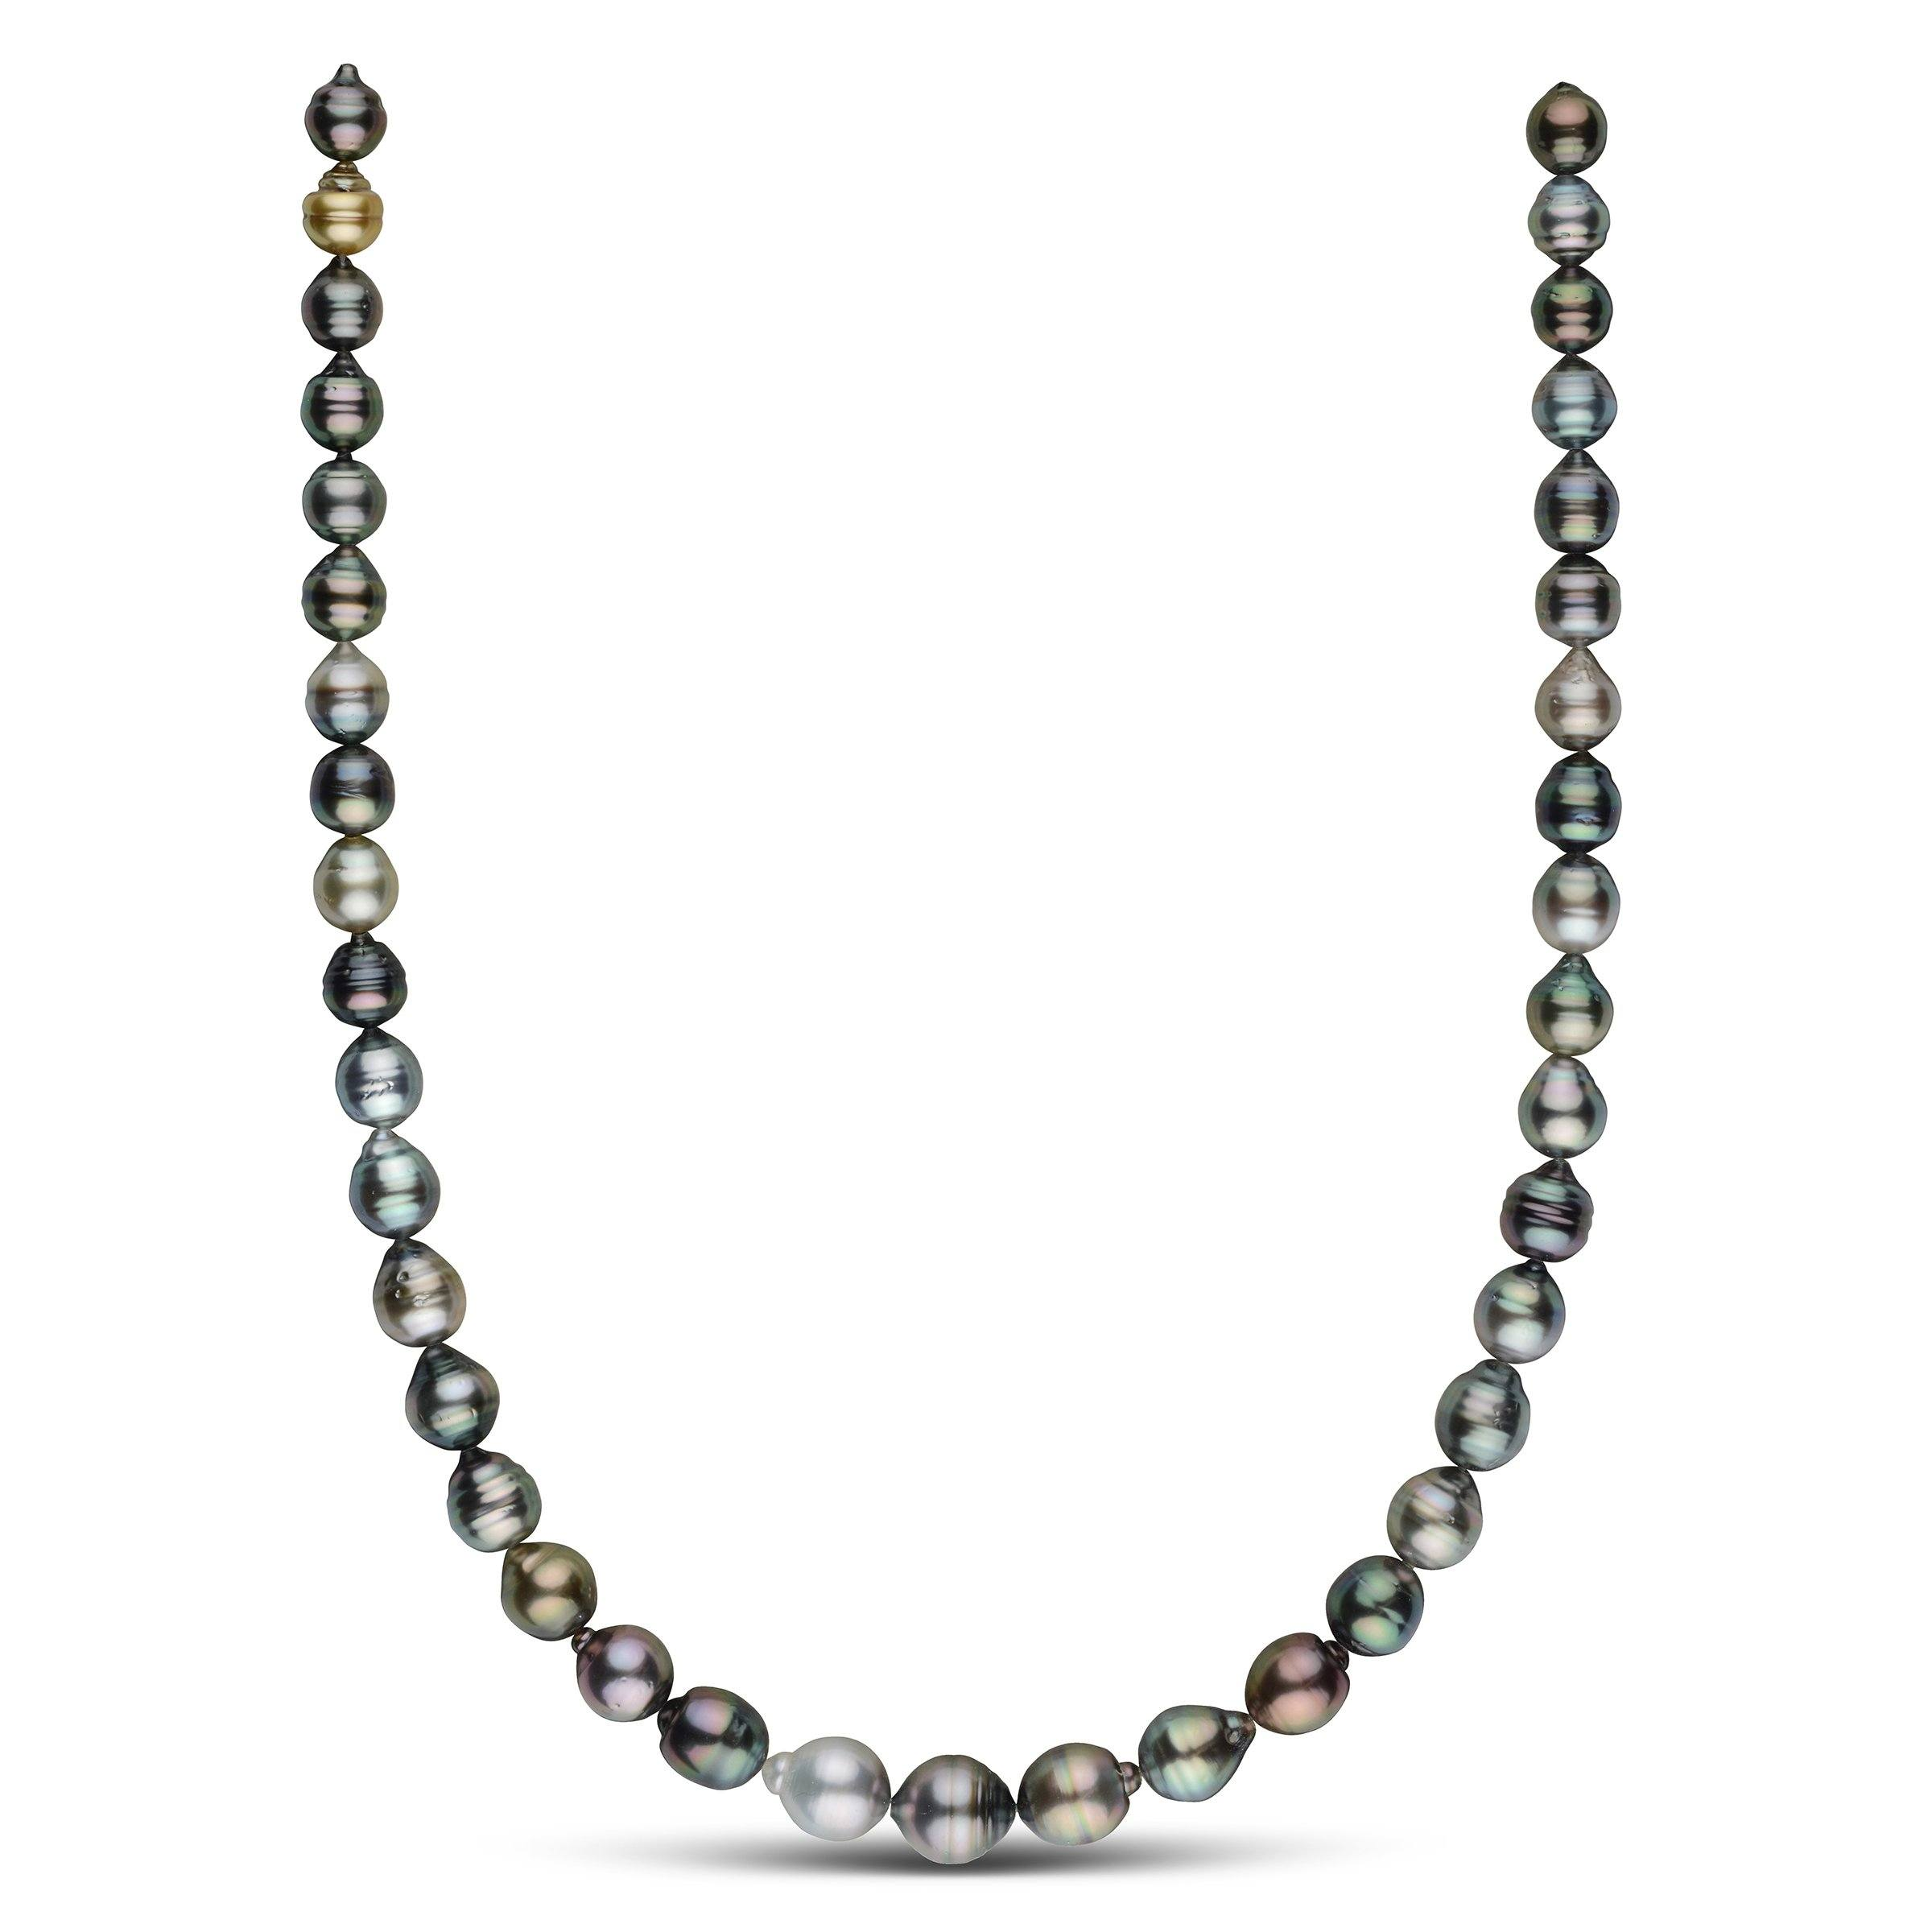 8.0-10.8 mm AA+/AAA Tahitian Baroque Pearl Necklace